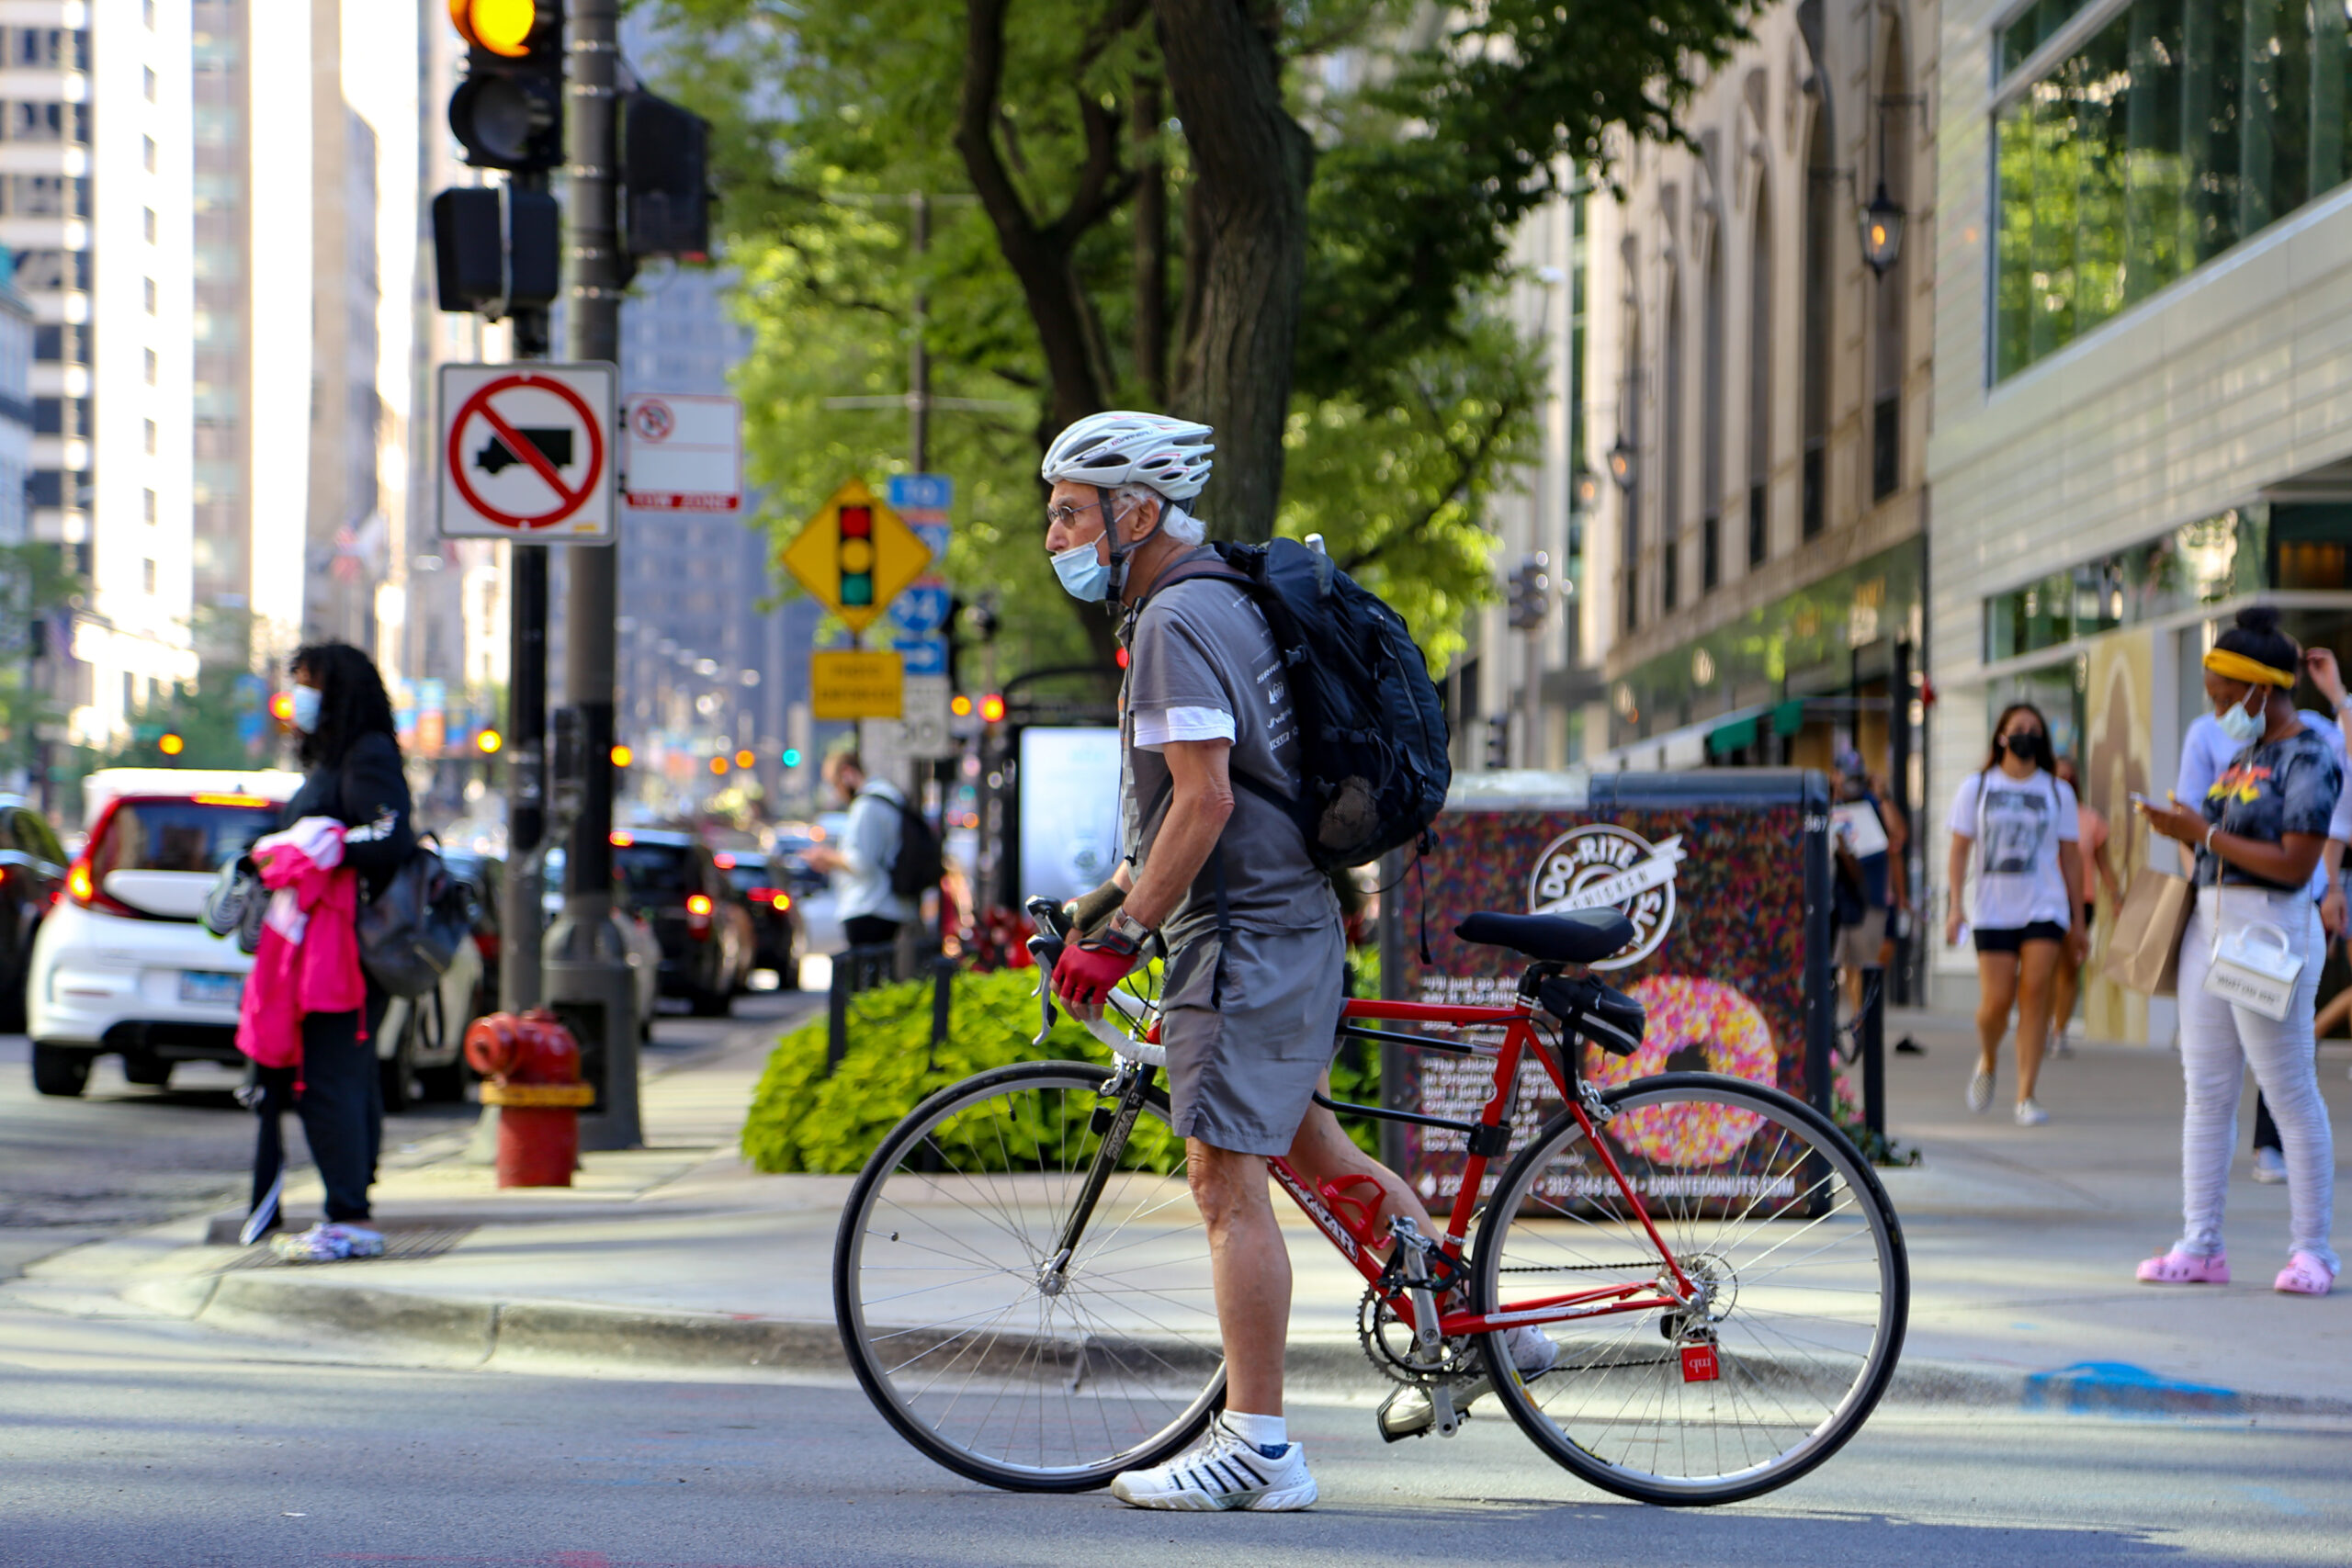 A bicyclist with a protective mask waits at an intersection along Michigan Avenue in Chicago, Illinois, on Friday, July 24, 2020. Credit: Olivia Obineme/Bloomberg via Getty Images